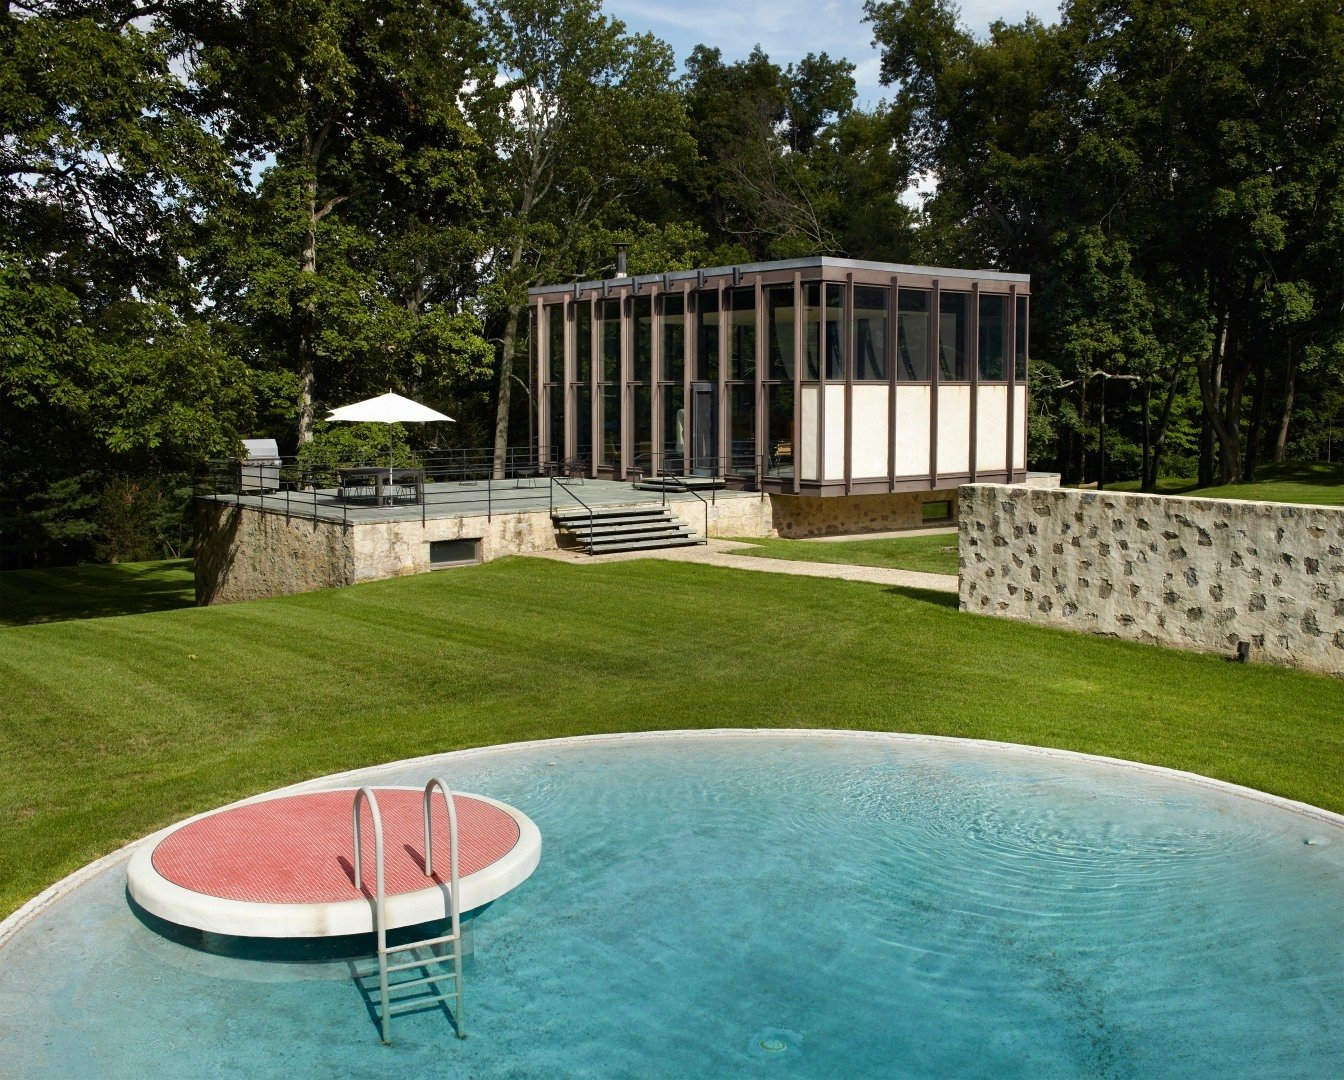 The new pool house and transformed barn that were created by Roger Ferris + Partners during a recent renovation, work together to create a courtyard that borders the original swimming pool. While a very similar circular pool can be found at the Glass House, this one features a lily pad diving platform that's finished with red tile.  Wiley House by Dwell